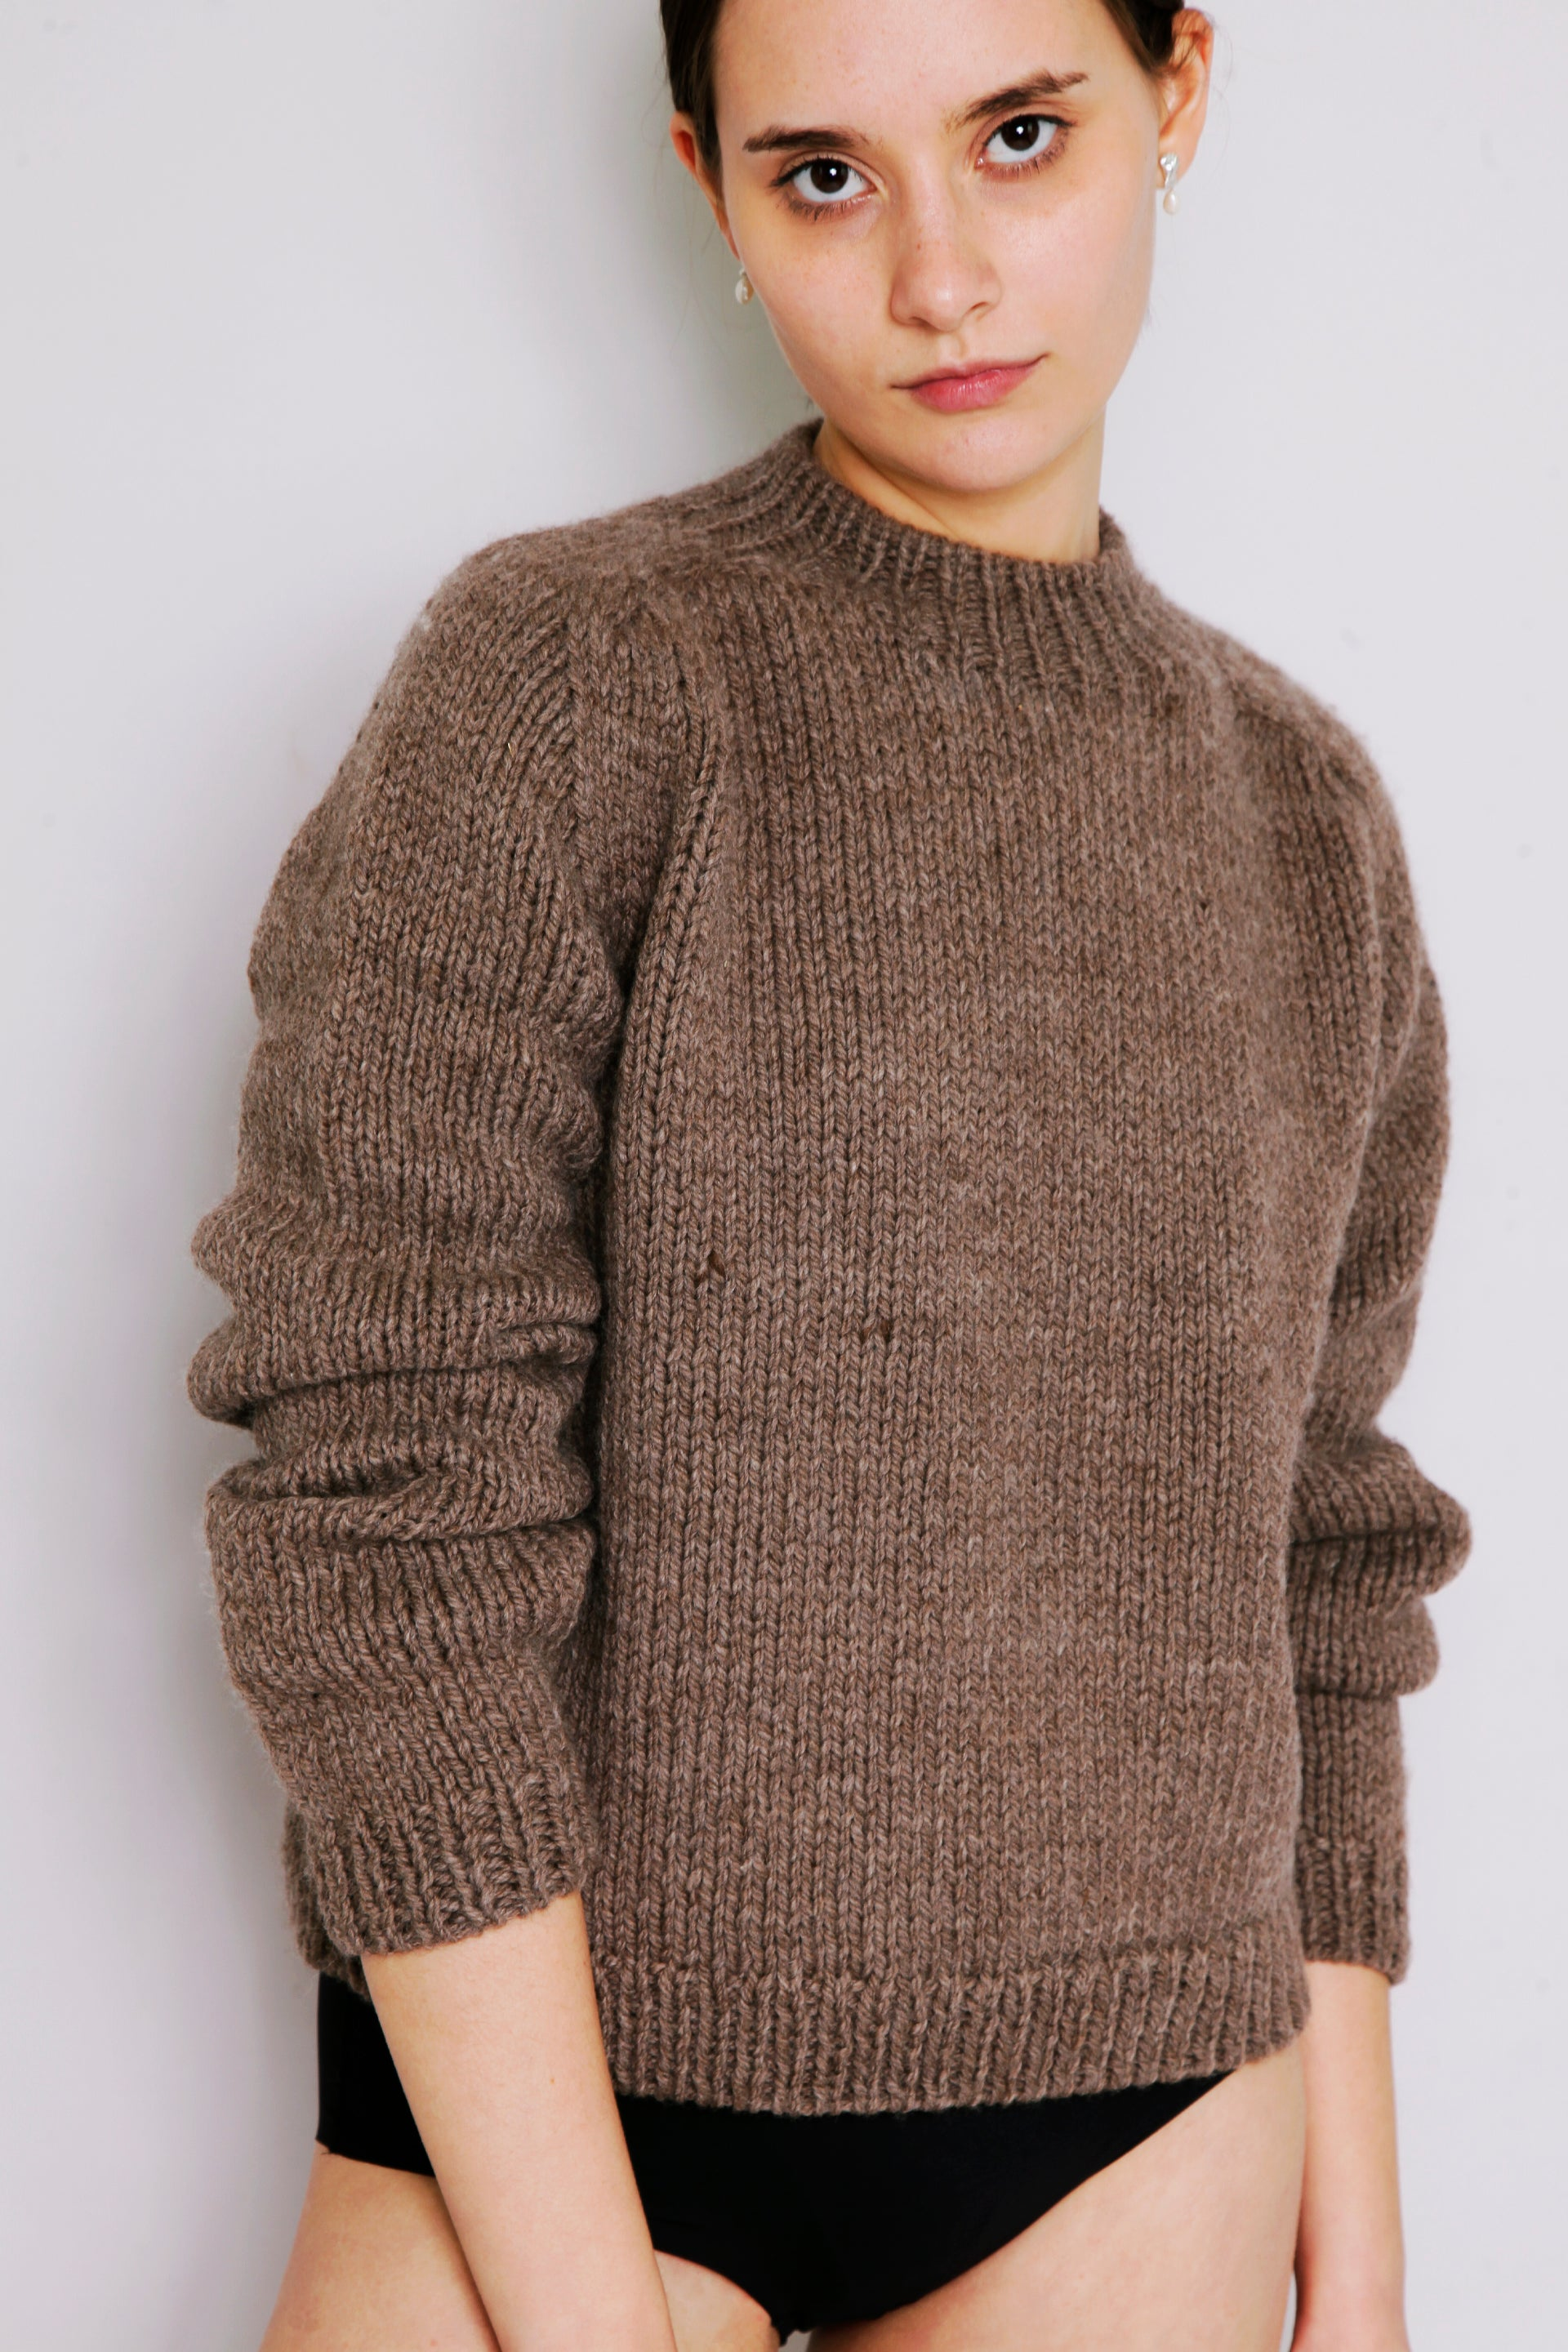 HAND KNITTED MOLLE WOOL JUMPER - CUB